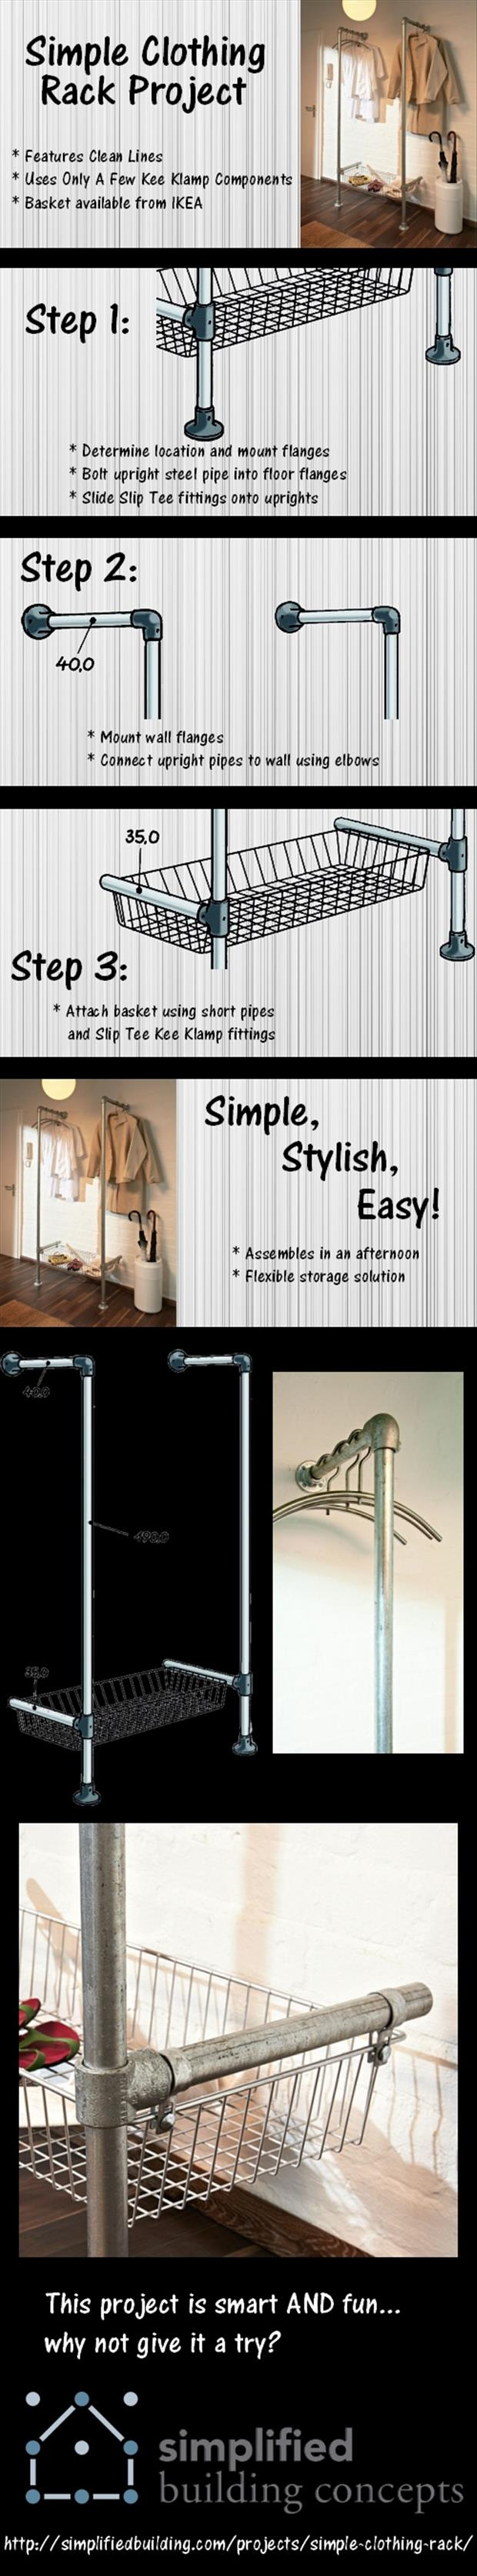 do-it-yourself-home-projects-closet